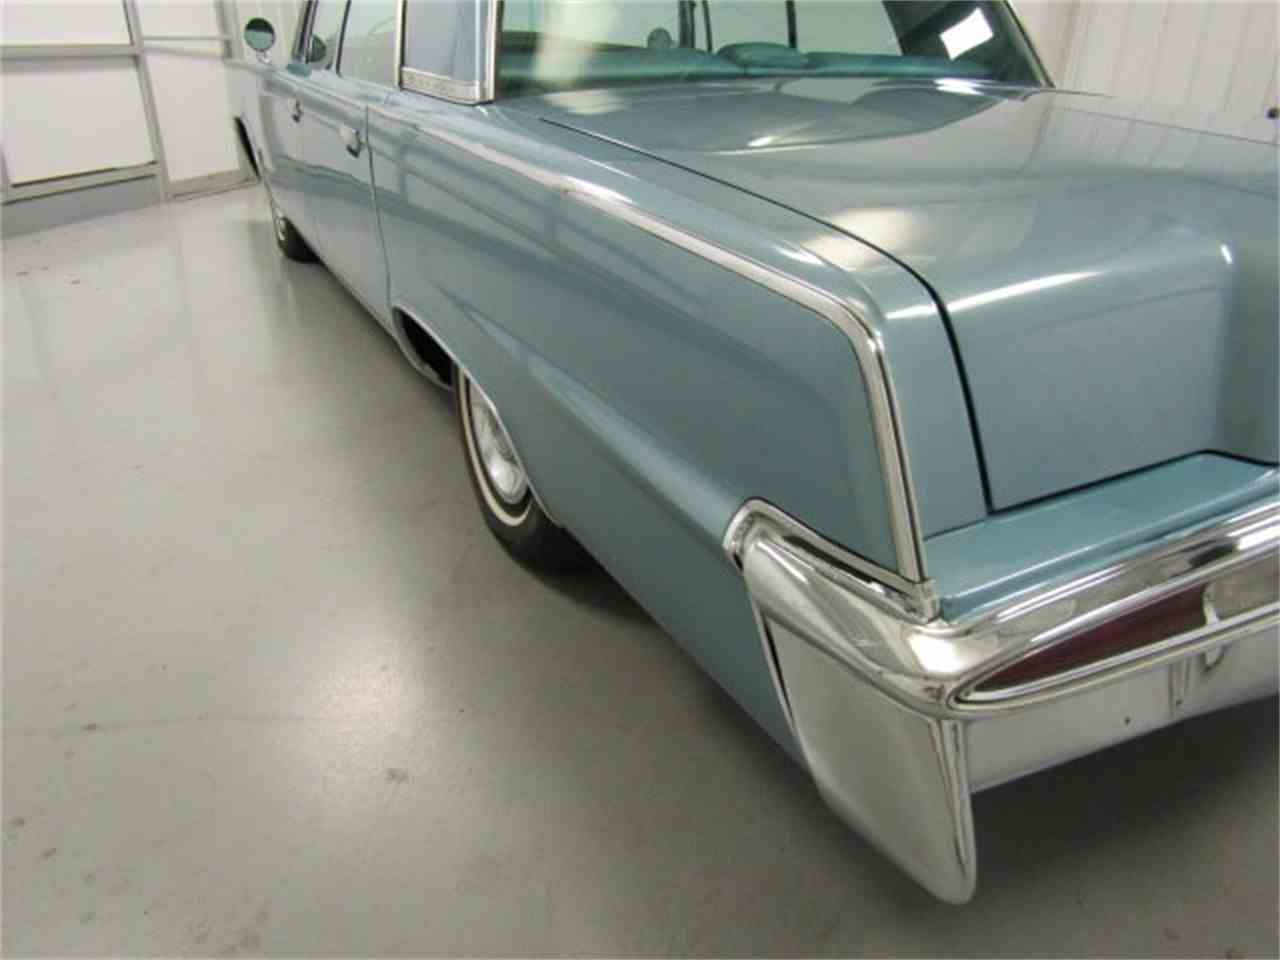 Large Picture of Classic 1964 Chrysler Imperial - $21,970.00 Offered by Duncan Imports & Classic Cars - JLDR